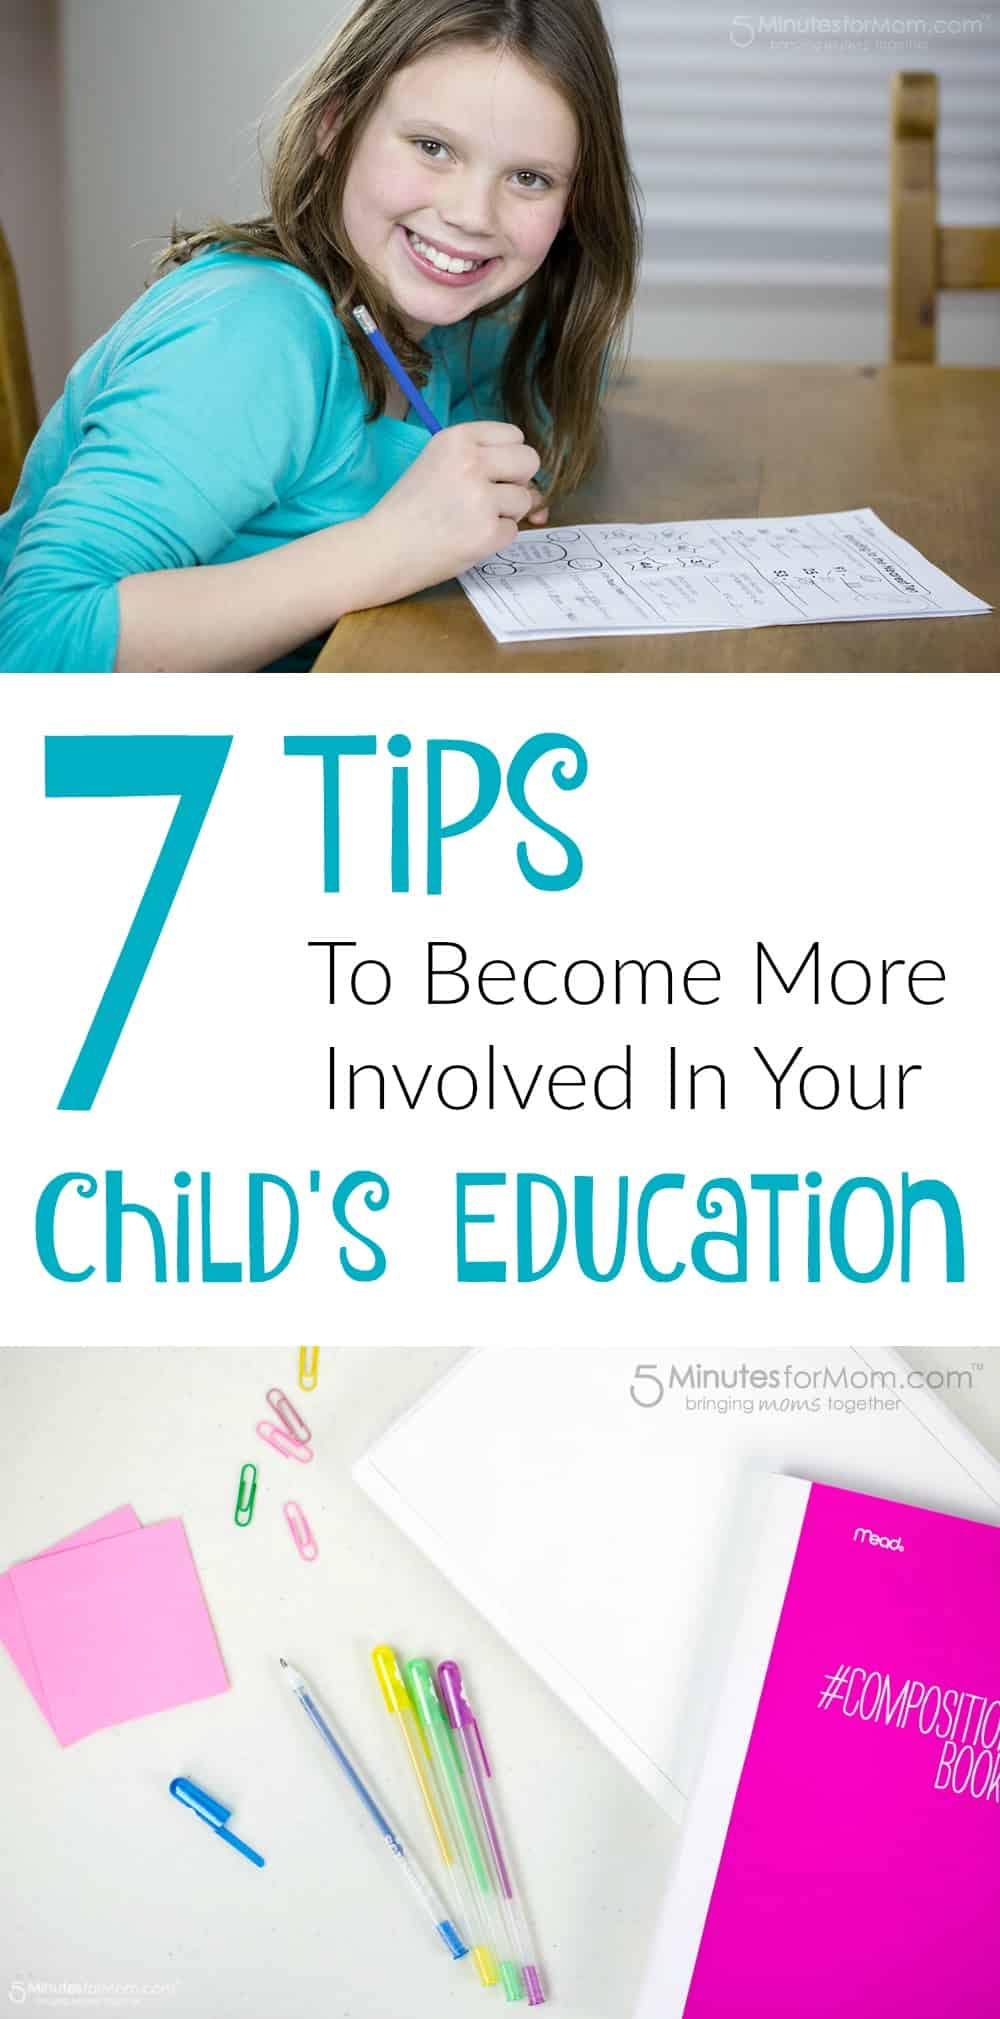 7 Tips to Become More Involved in Your Child's Education